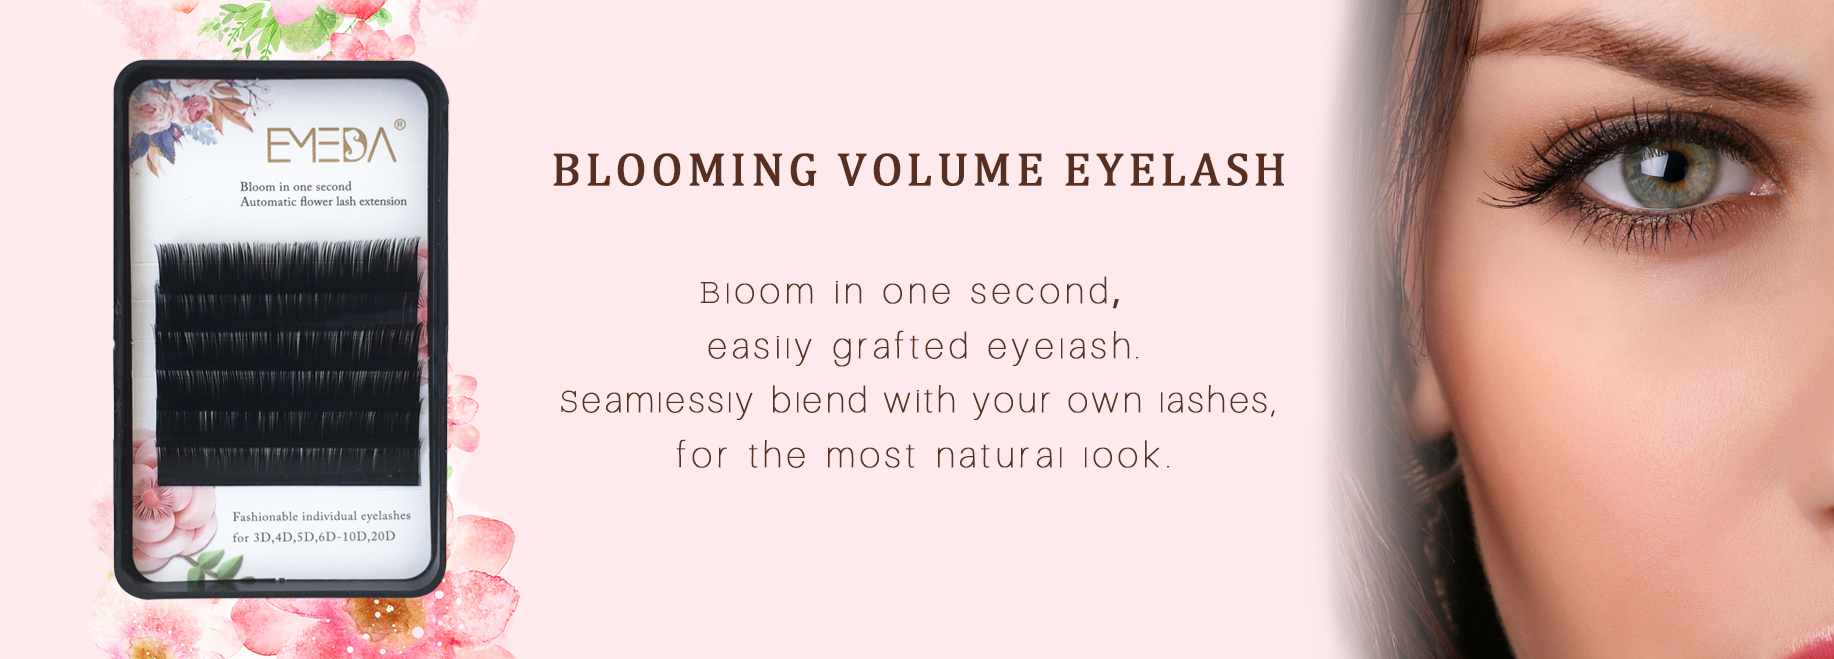 Blooming Volume Eyelash